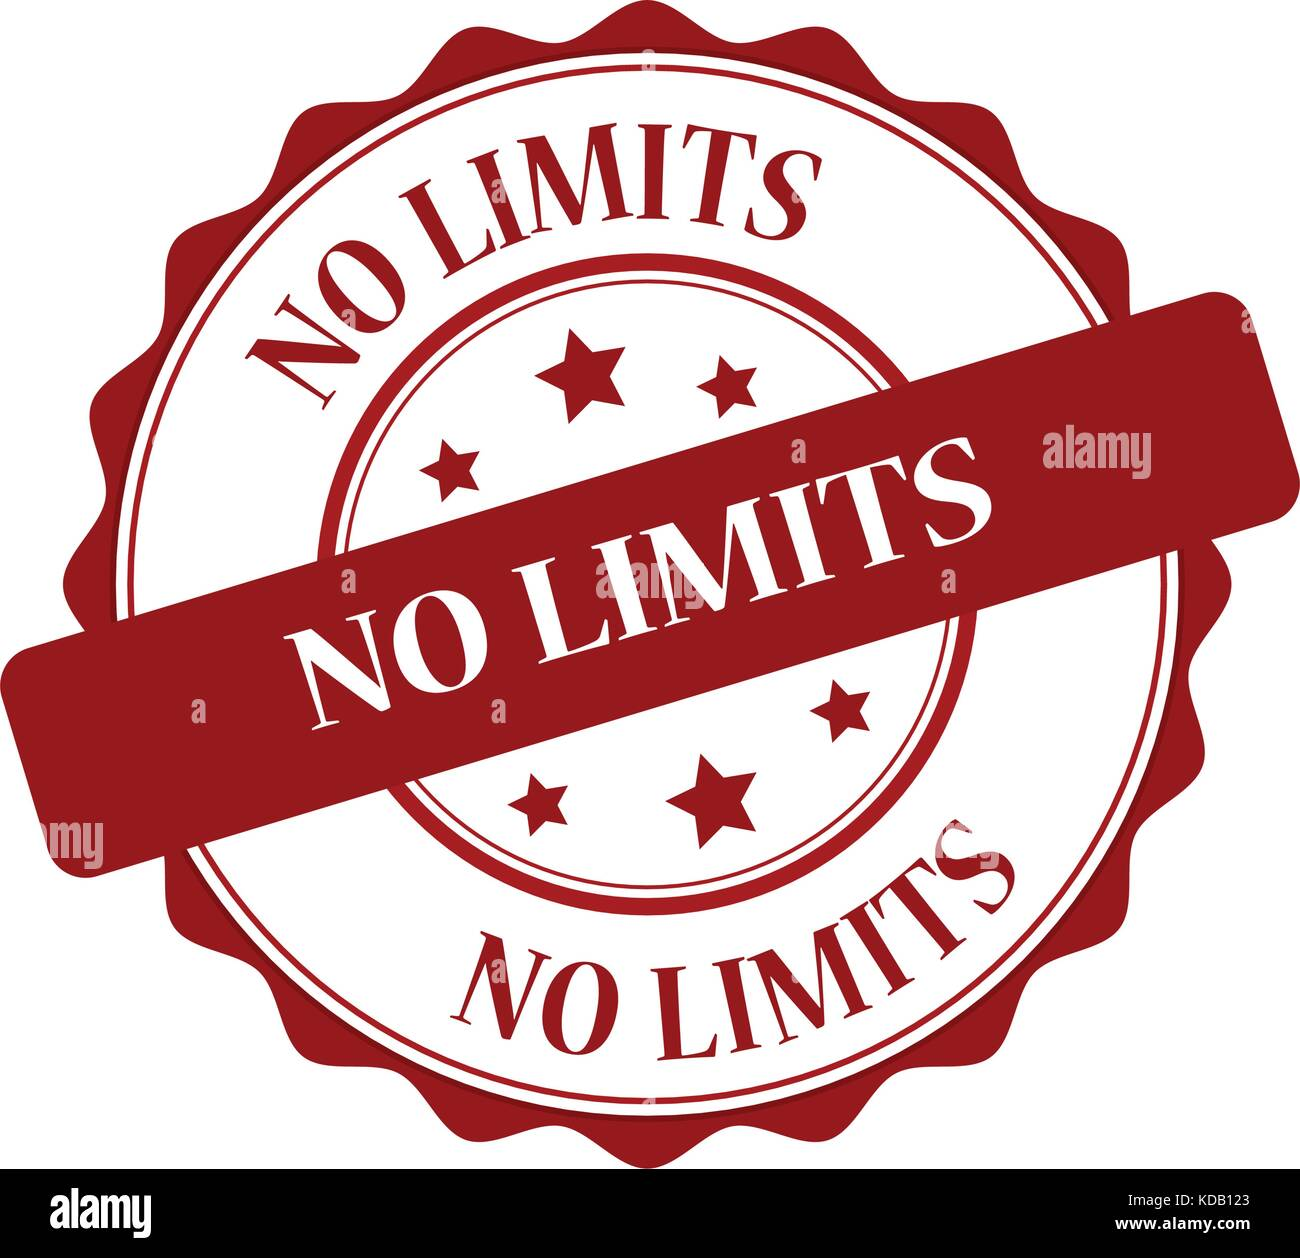 No limits red stamp illustration - Stock Image